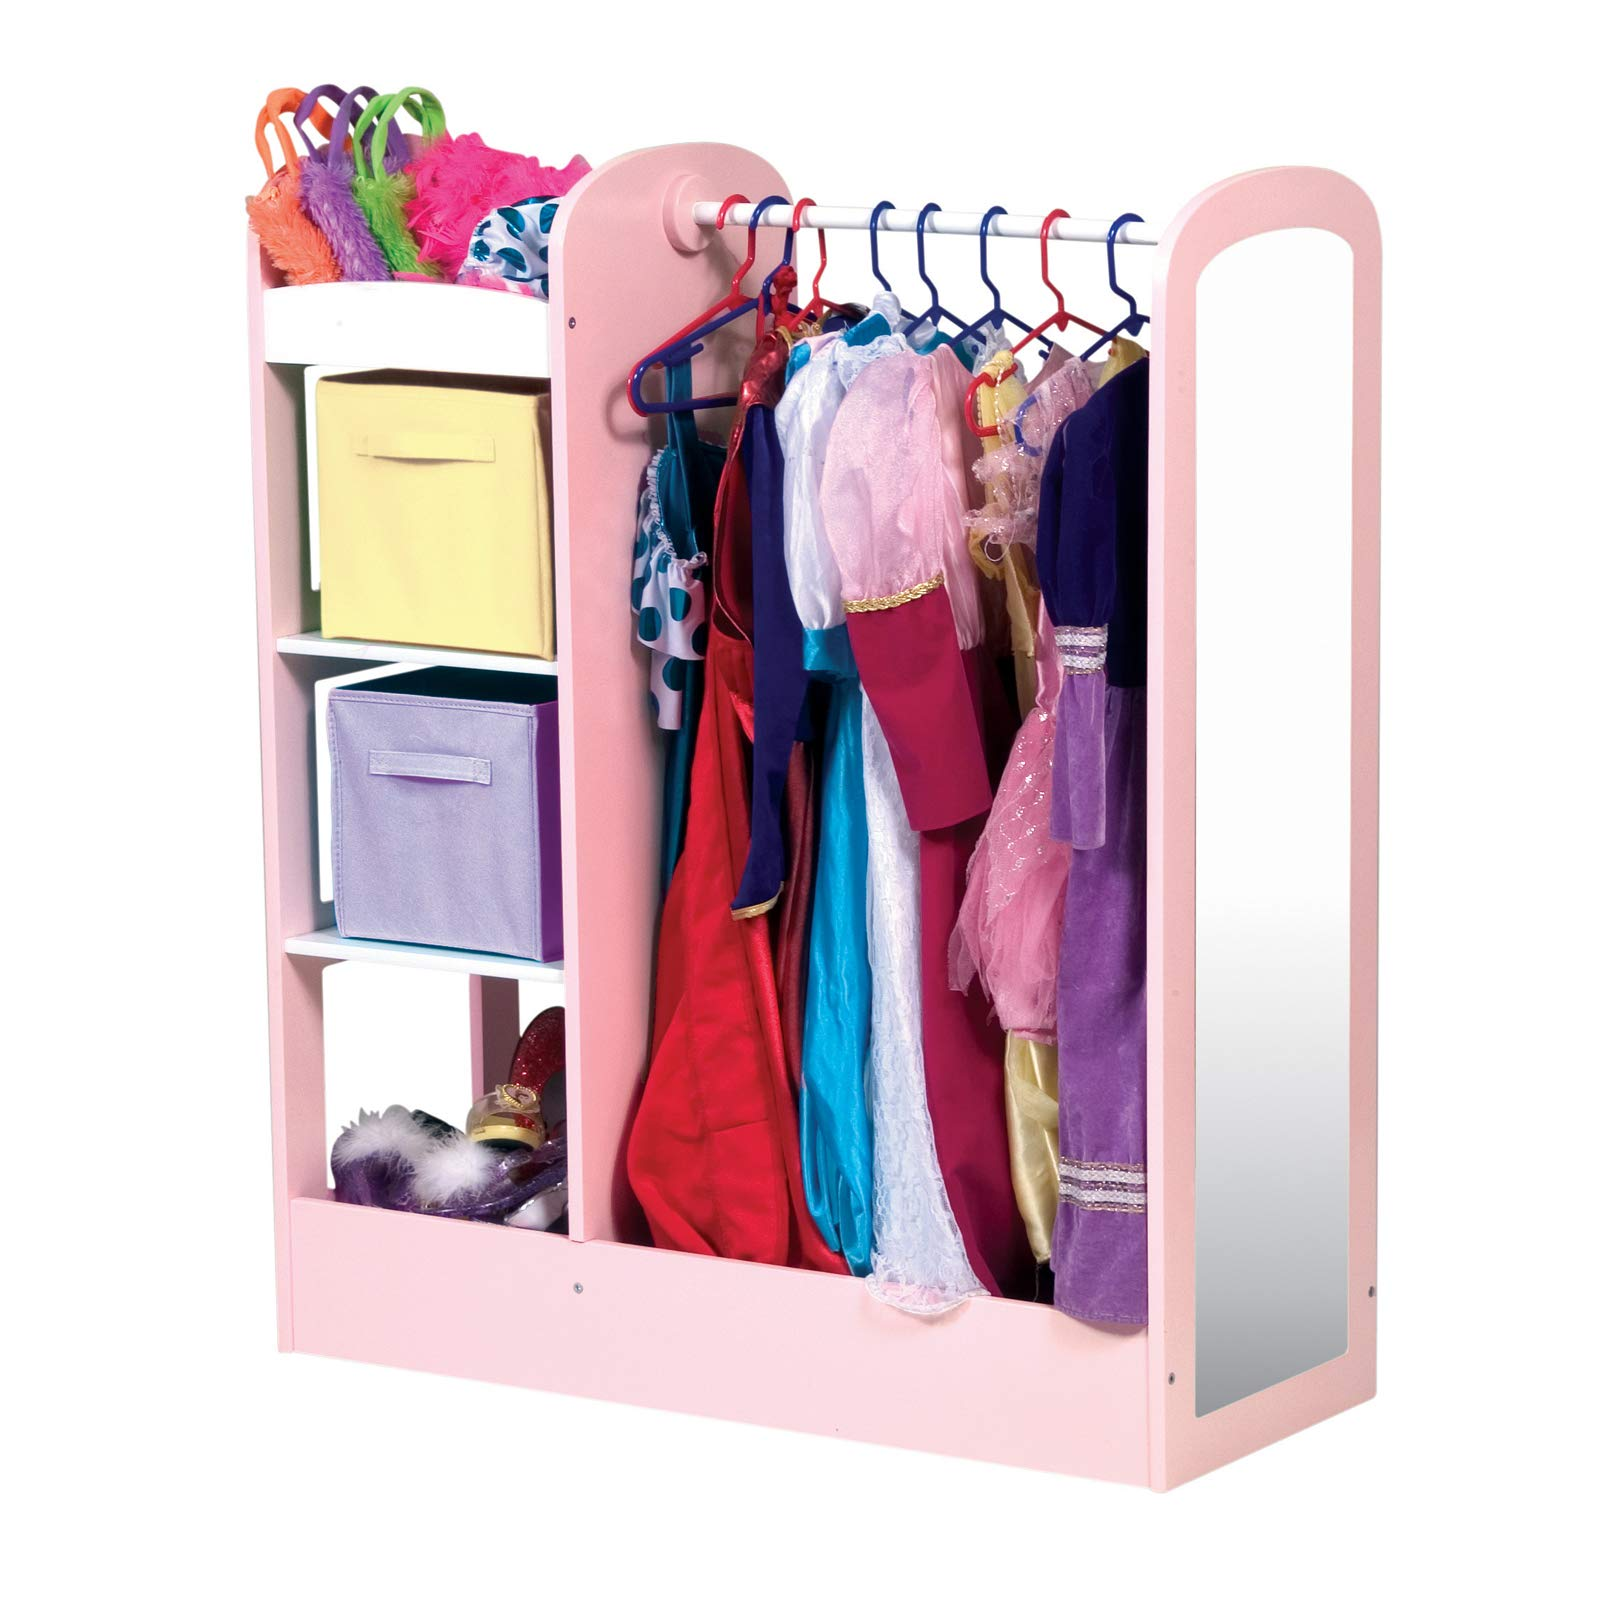 K&A Company See and Store Dress-up Center by Guidecraft, 42'' x 14'' x 24 lbs